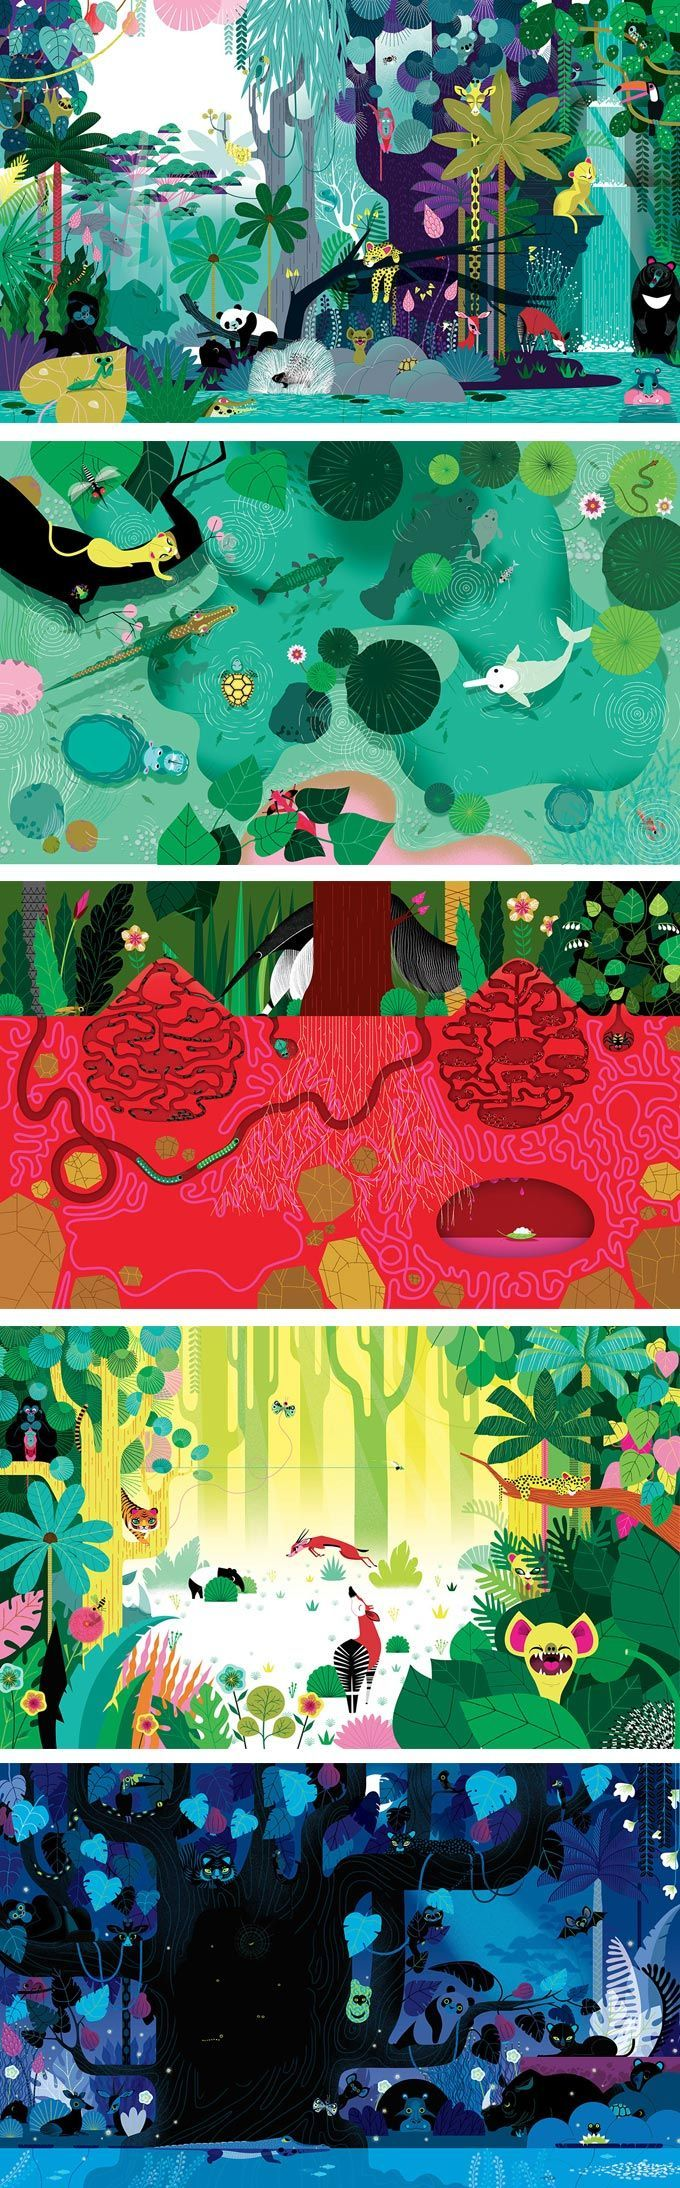 Lucie Brunellière - Colourful Jungles of Animals